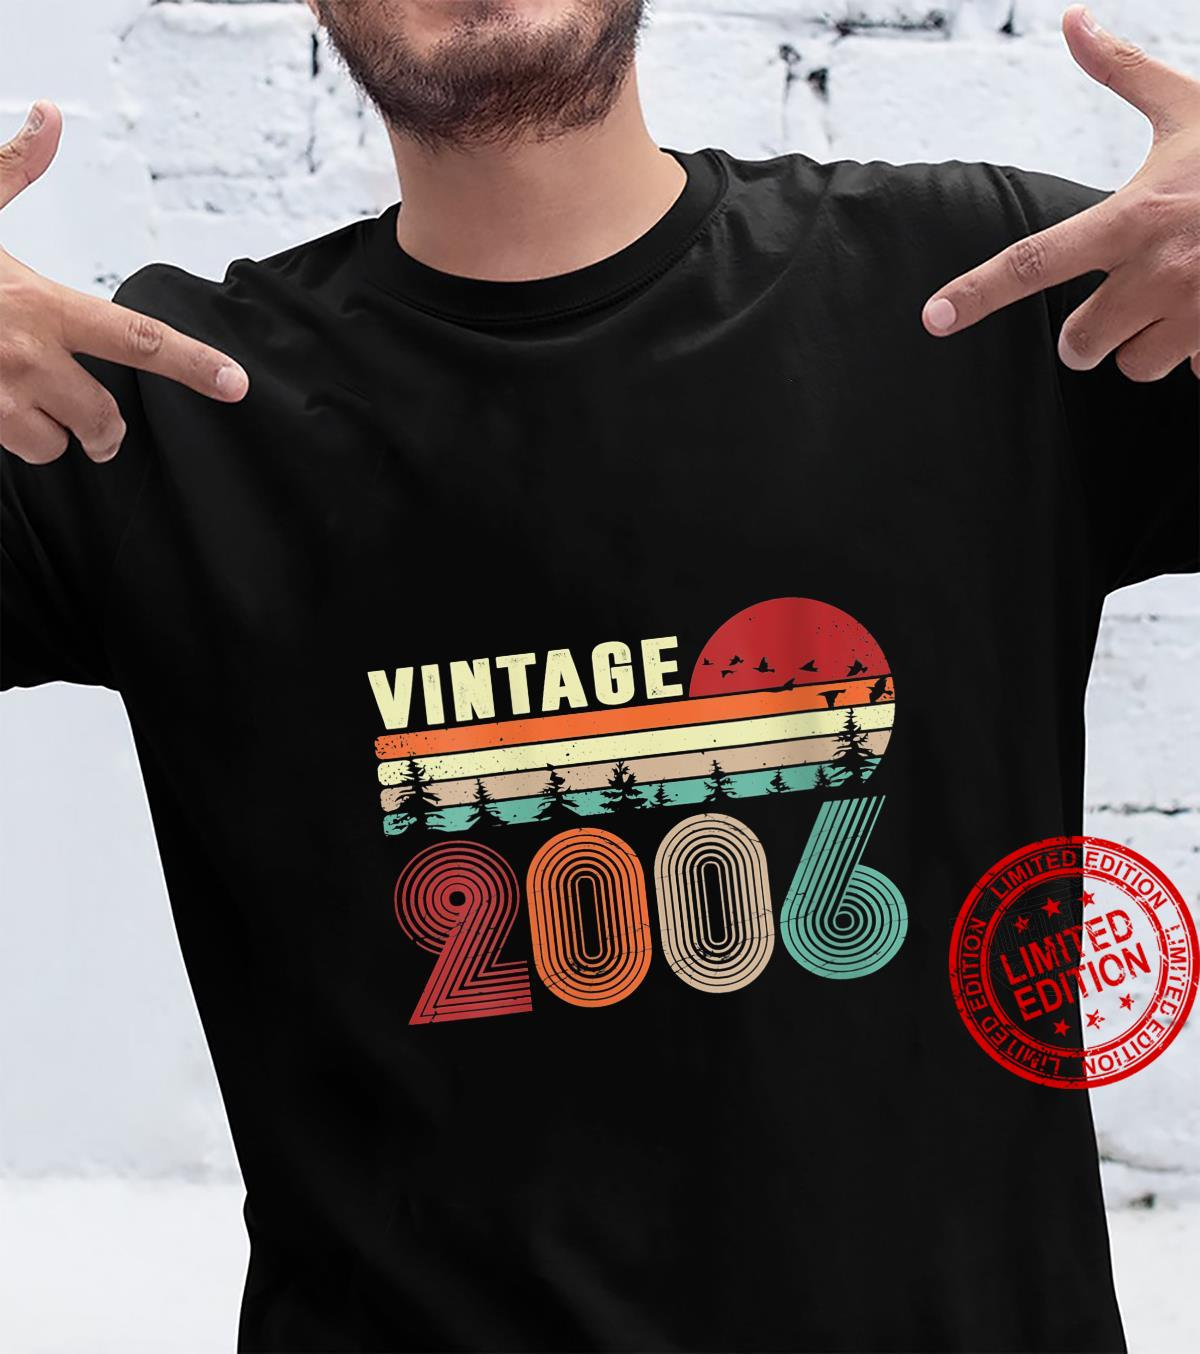 Womens Vintage 2006 Cool 15 Years Old Boys and Girls 15th Birthday Shirt